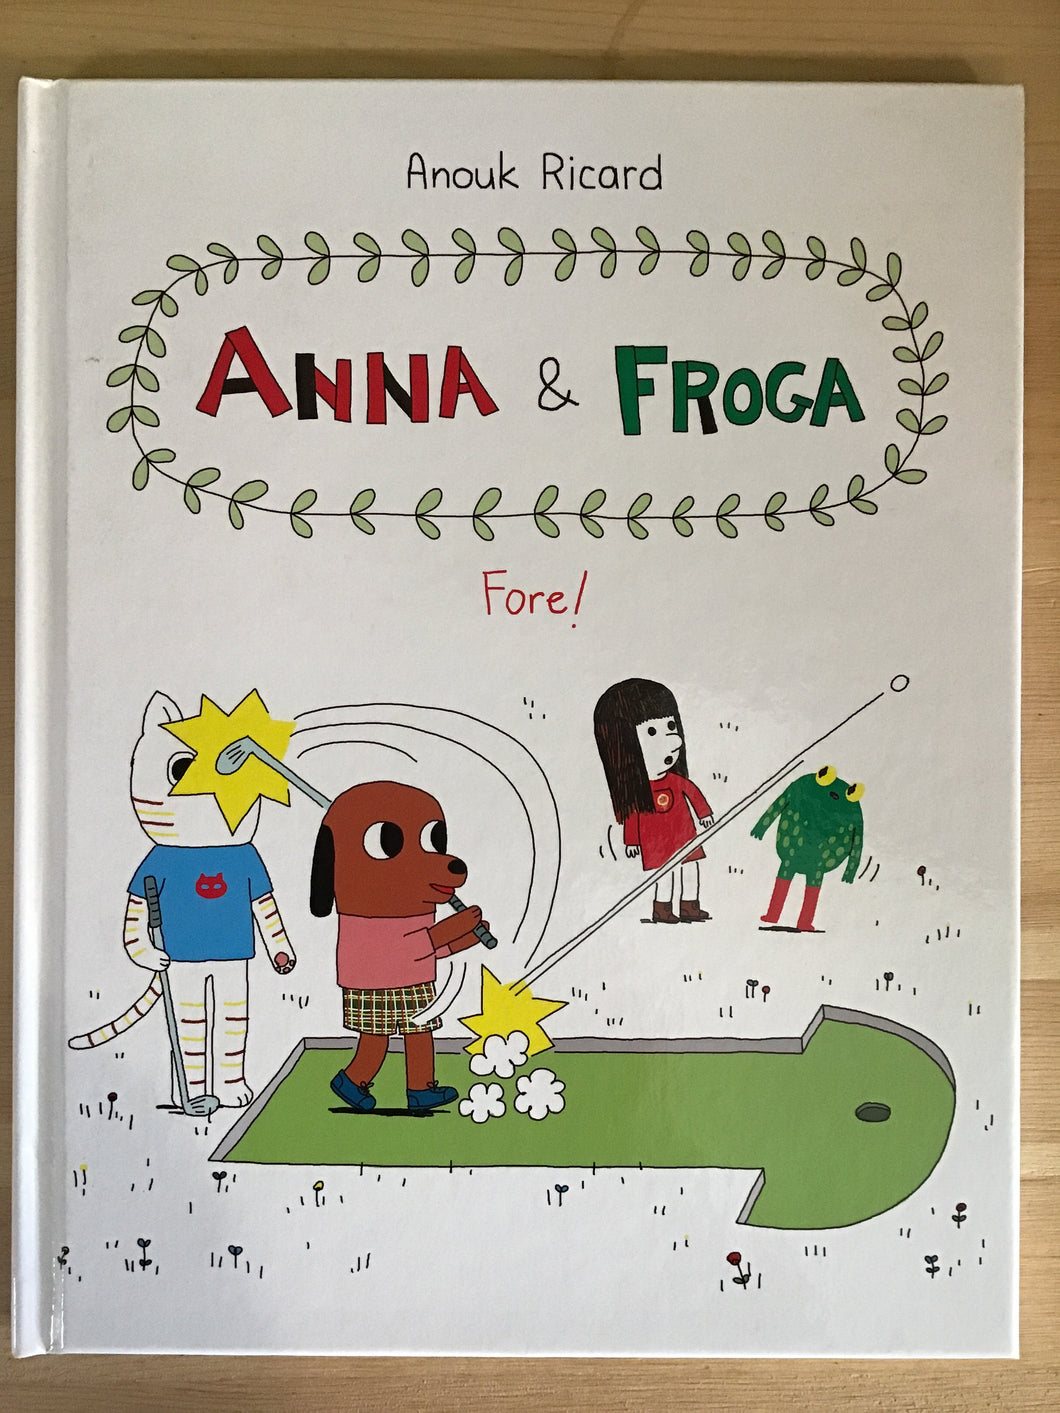 Anna & Froga: Fore!